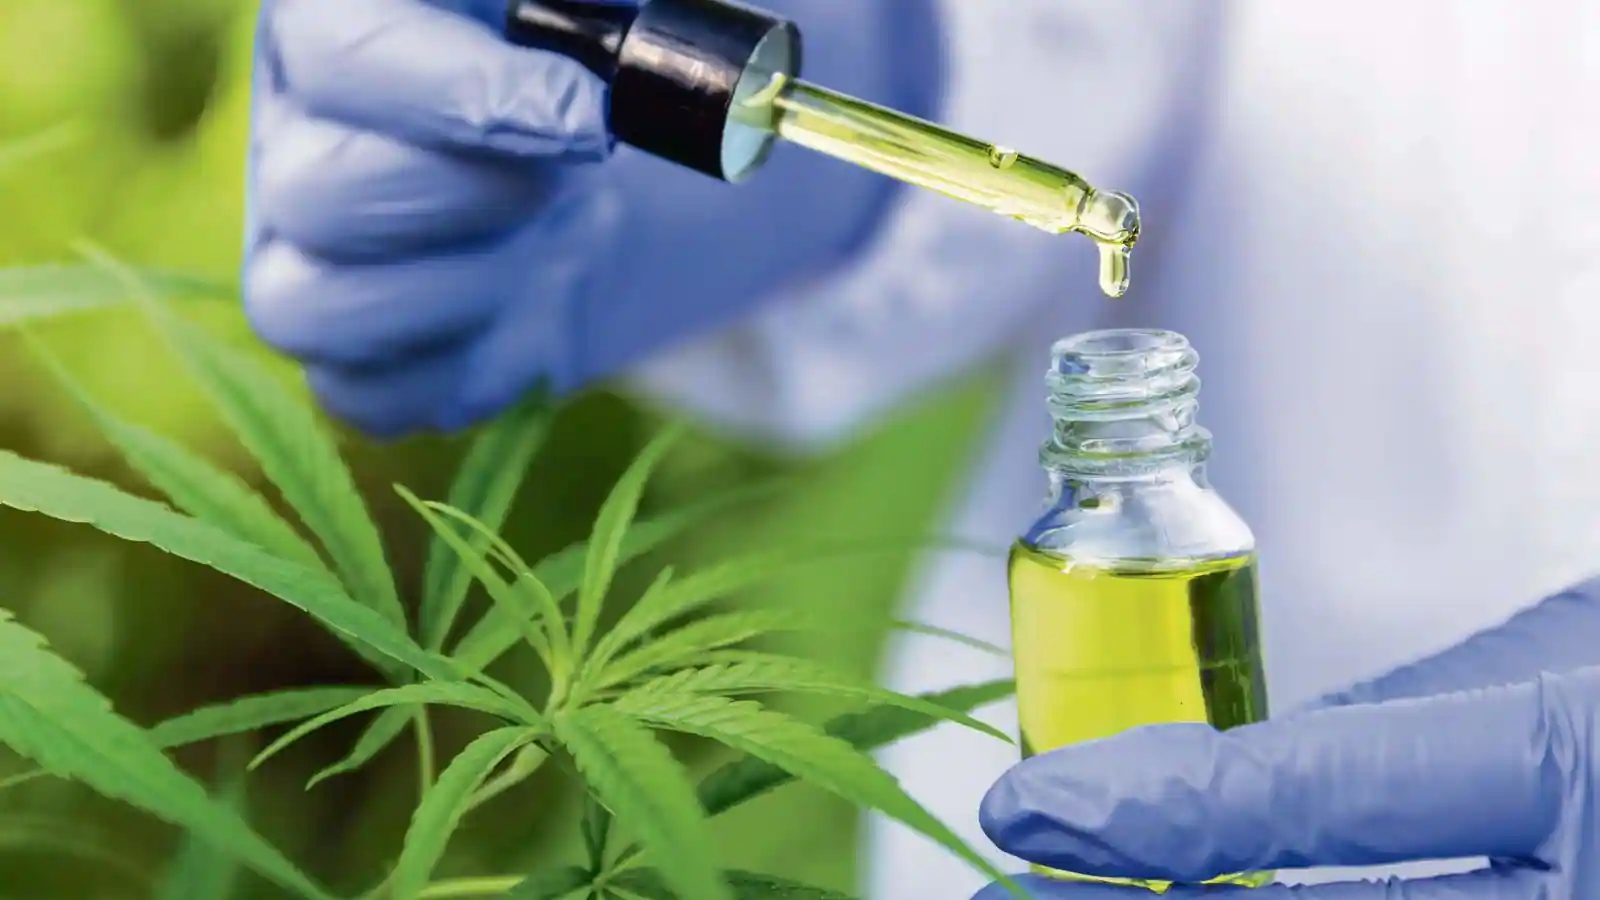 Thousands of people already buy CBD in France (CBD en France), only you are missing